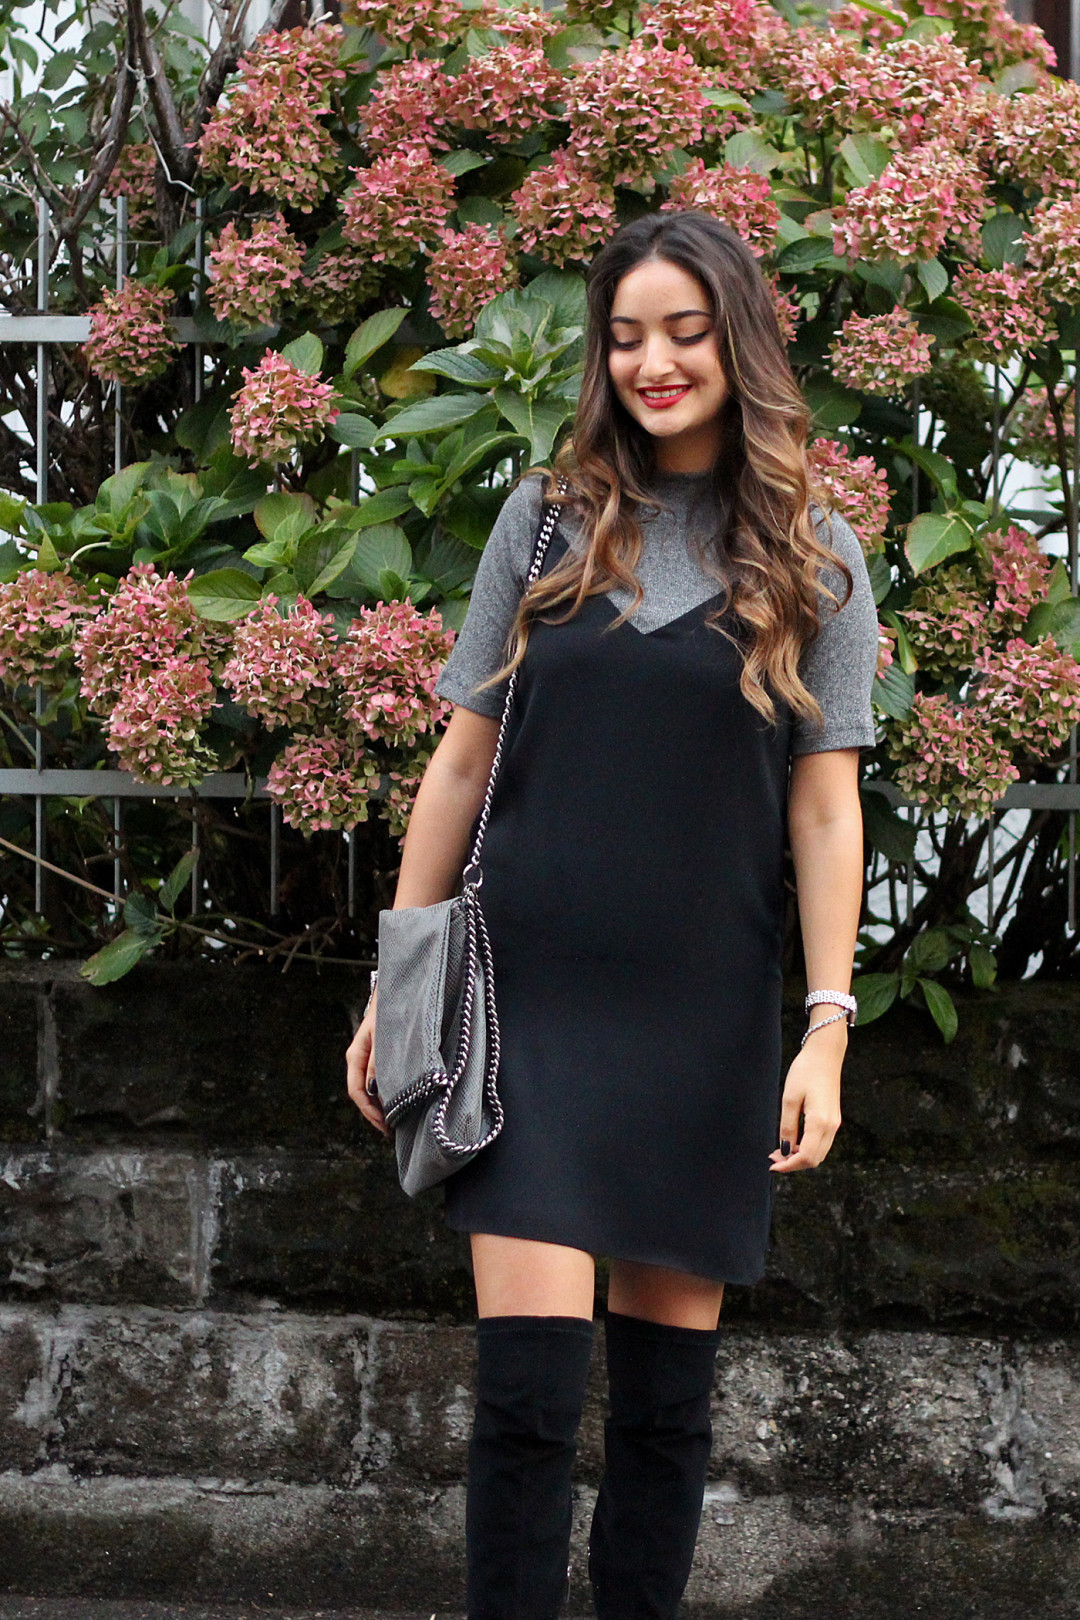 Layering Dresses over Shirts or Turtlenecks for Autumn